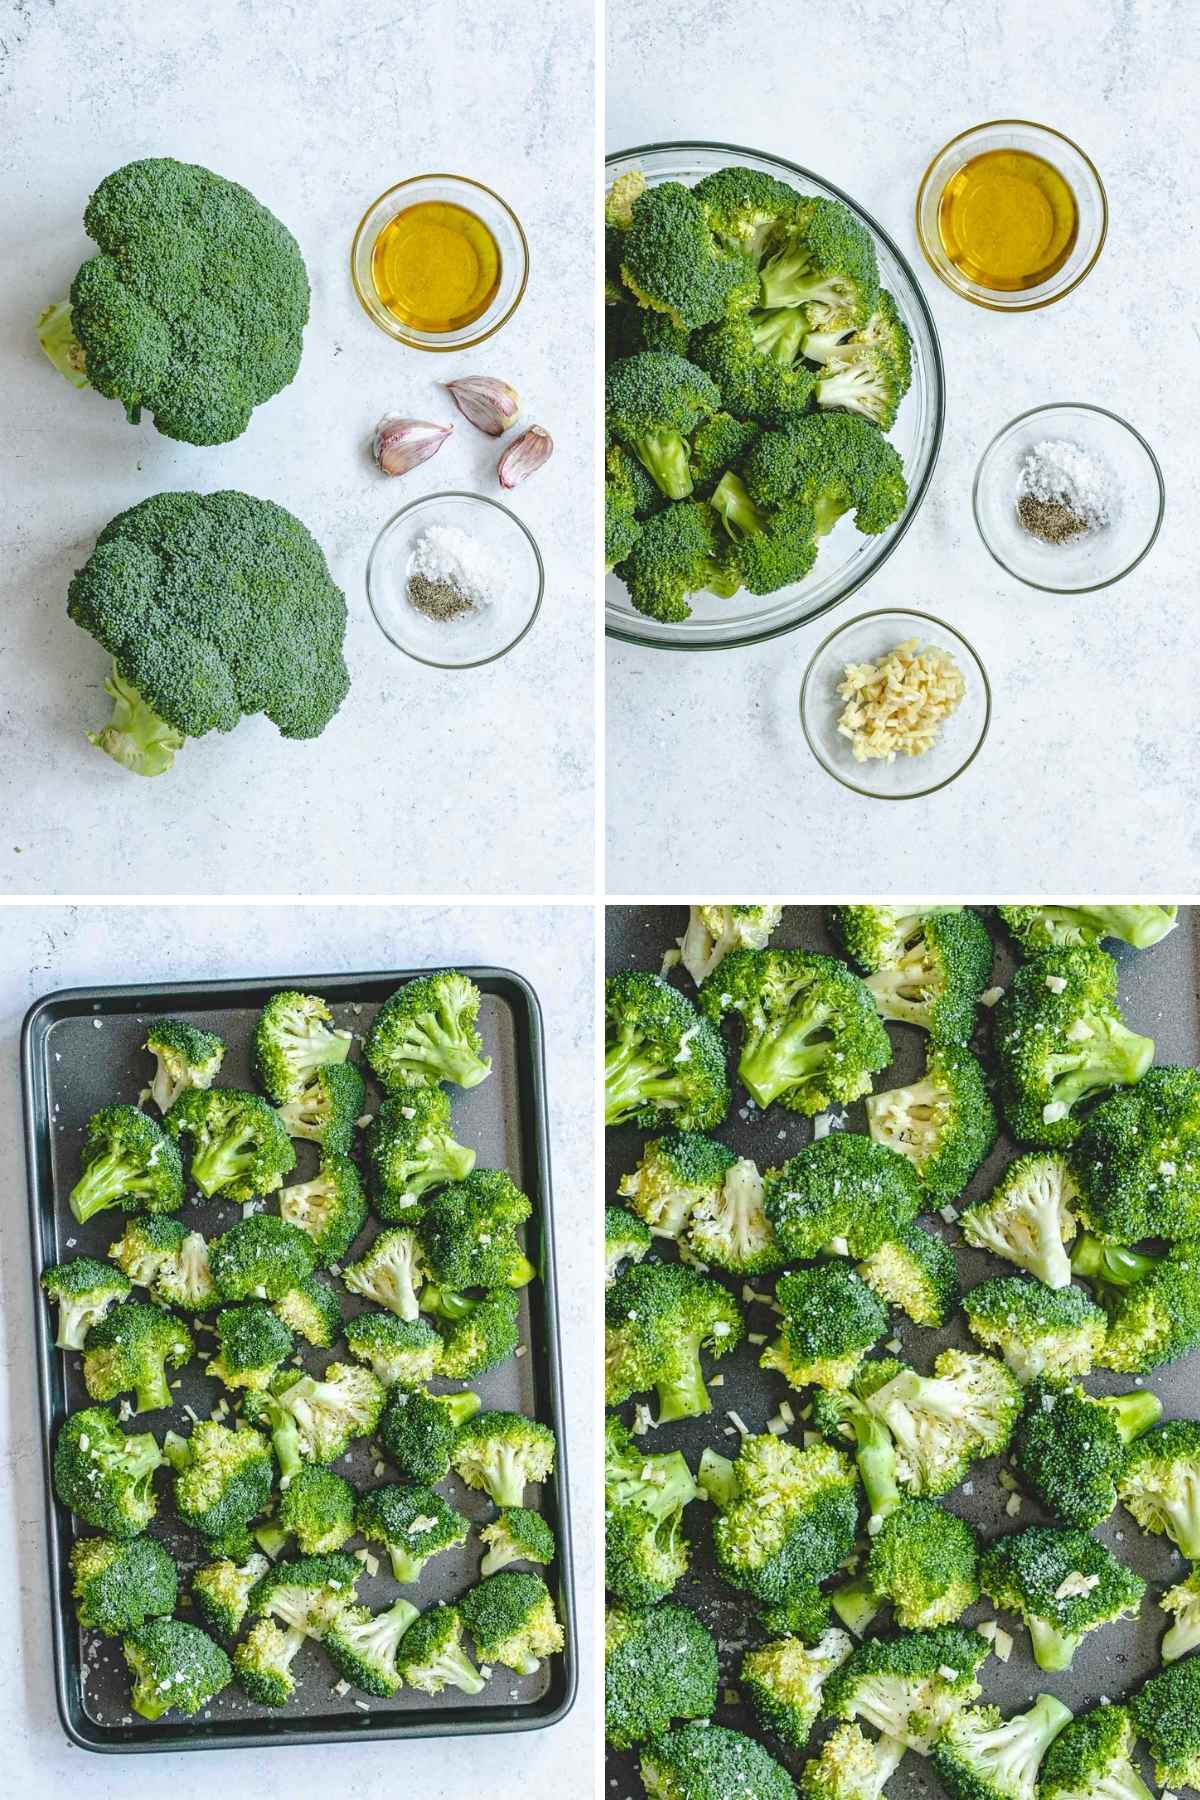 Roasted Broccoli with Garlic Collage